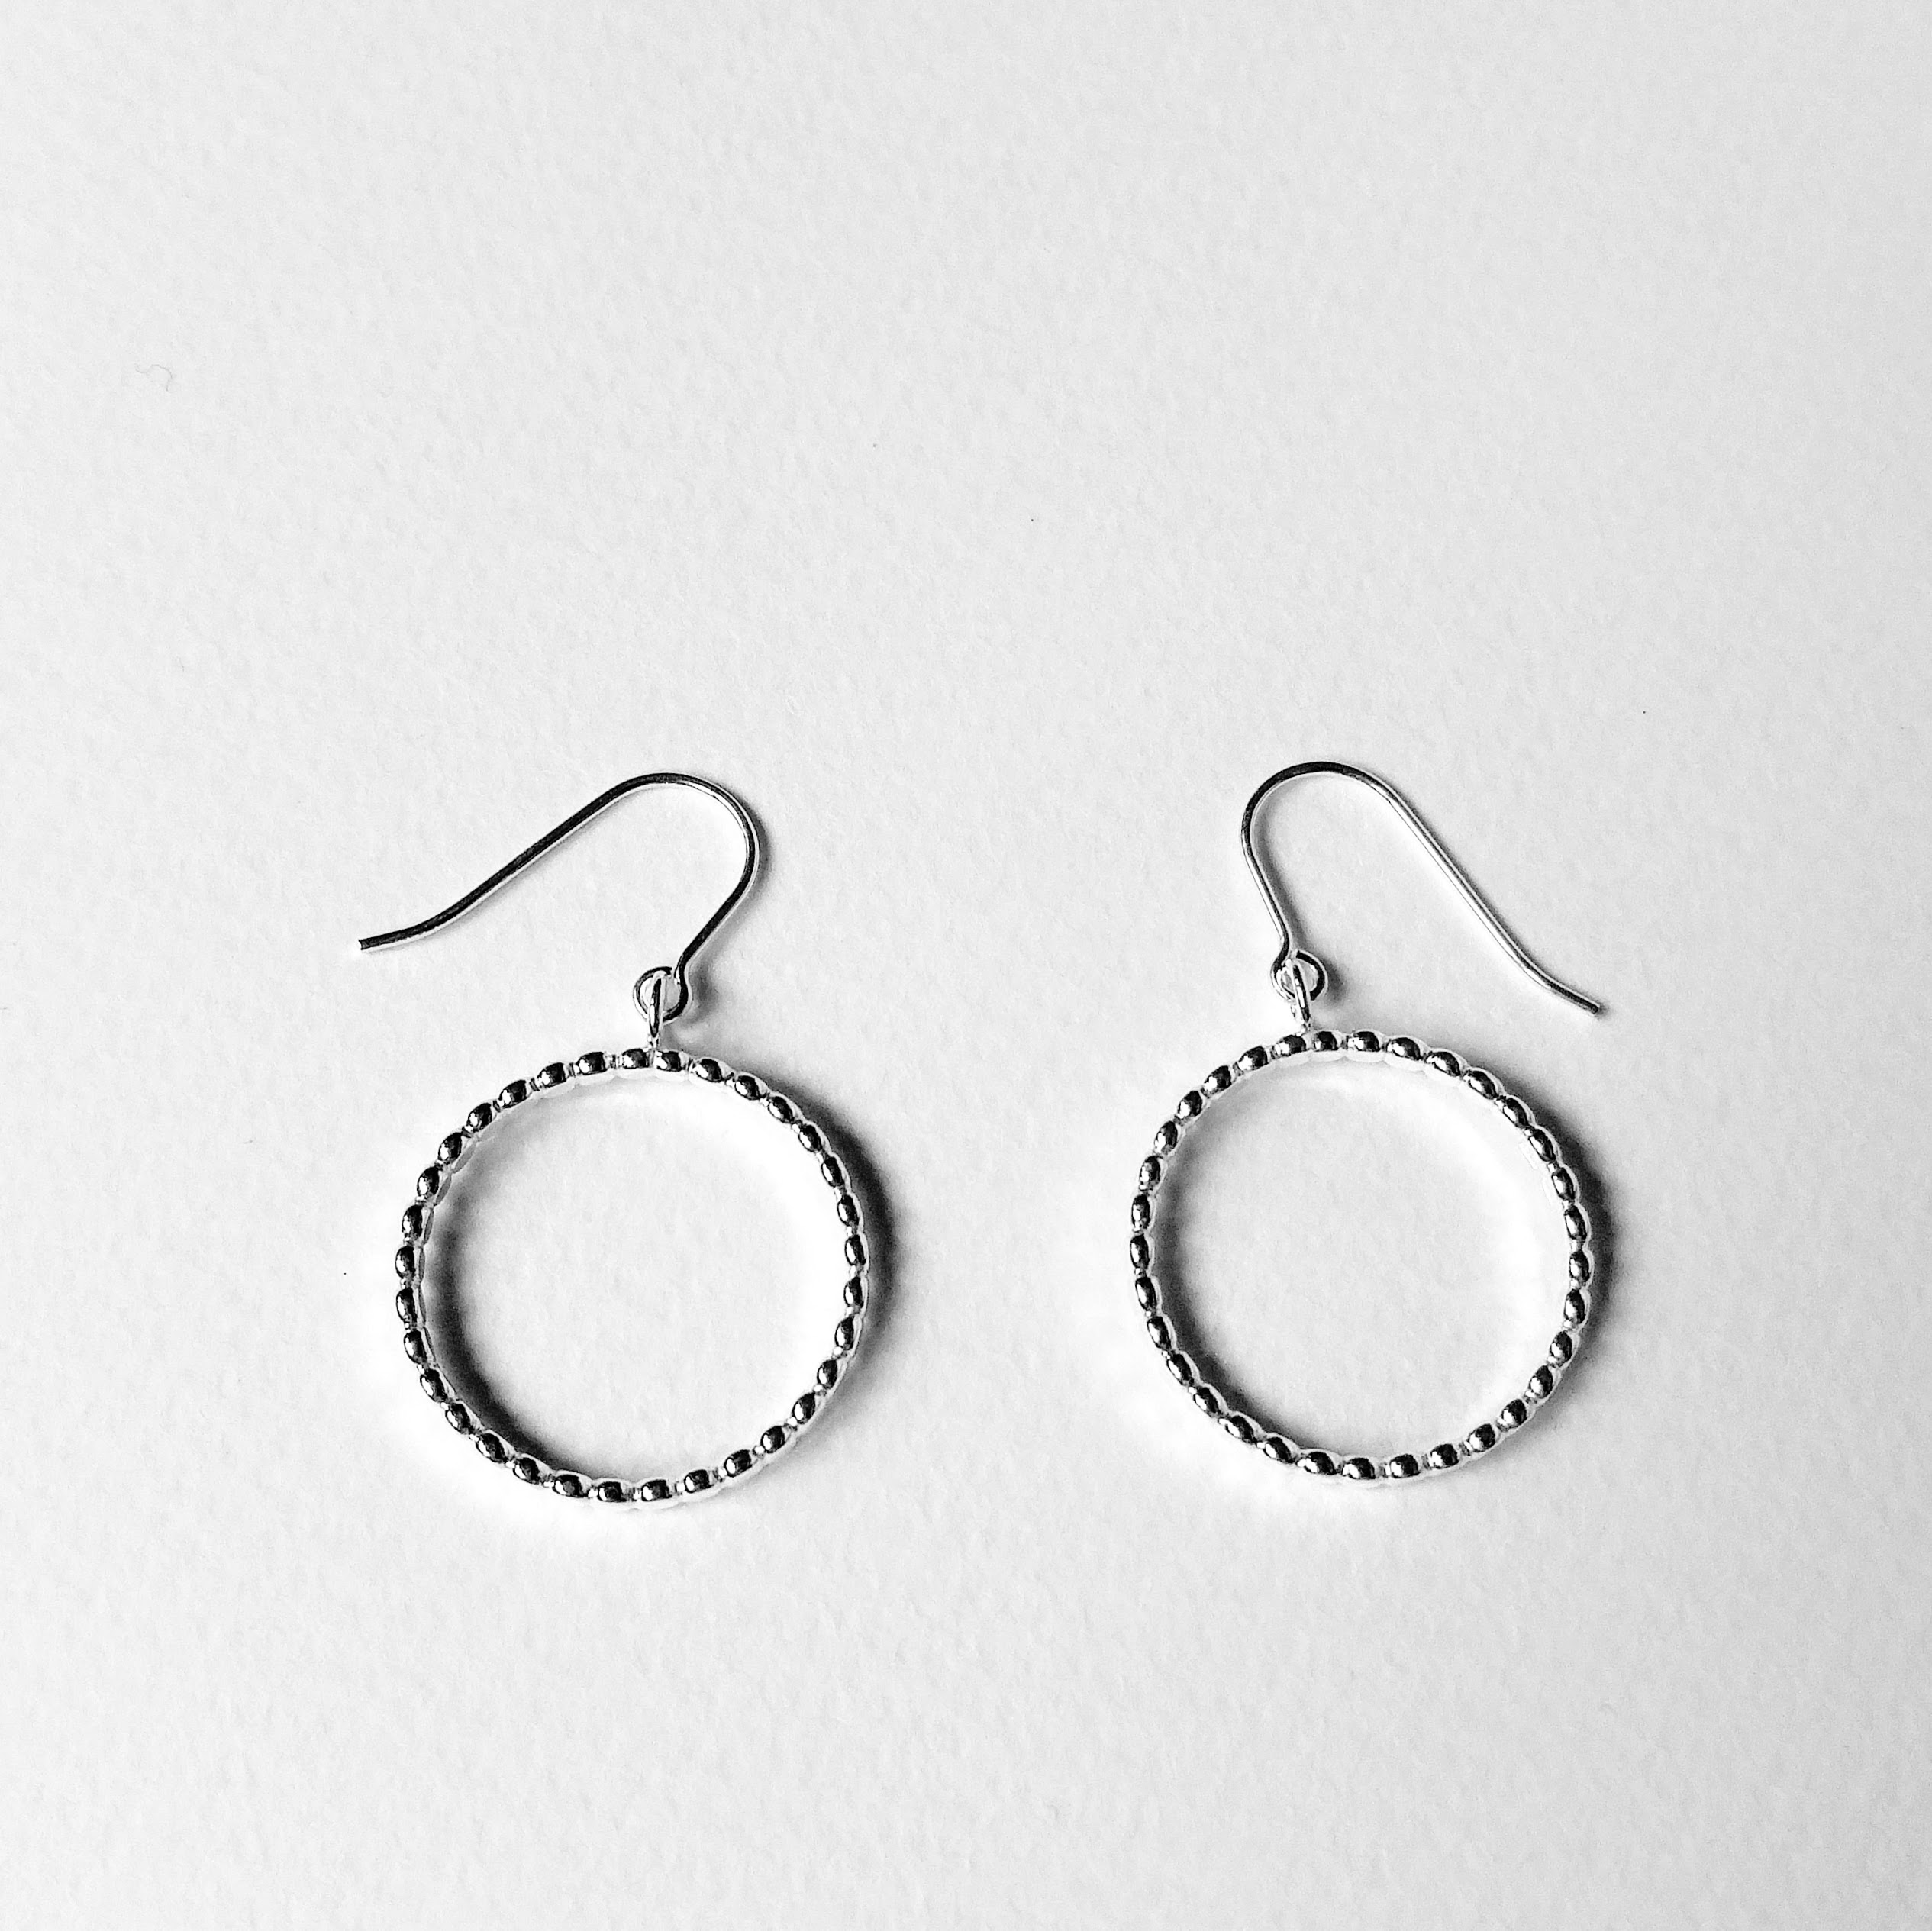 Nuance hoop earrings